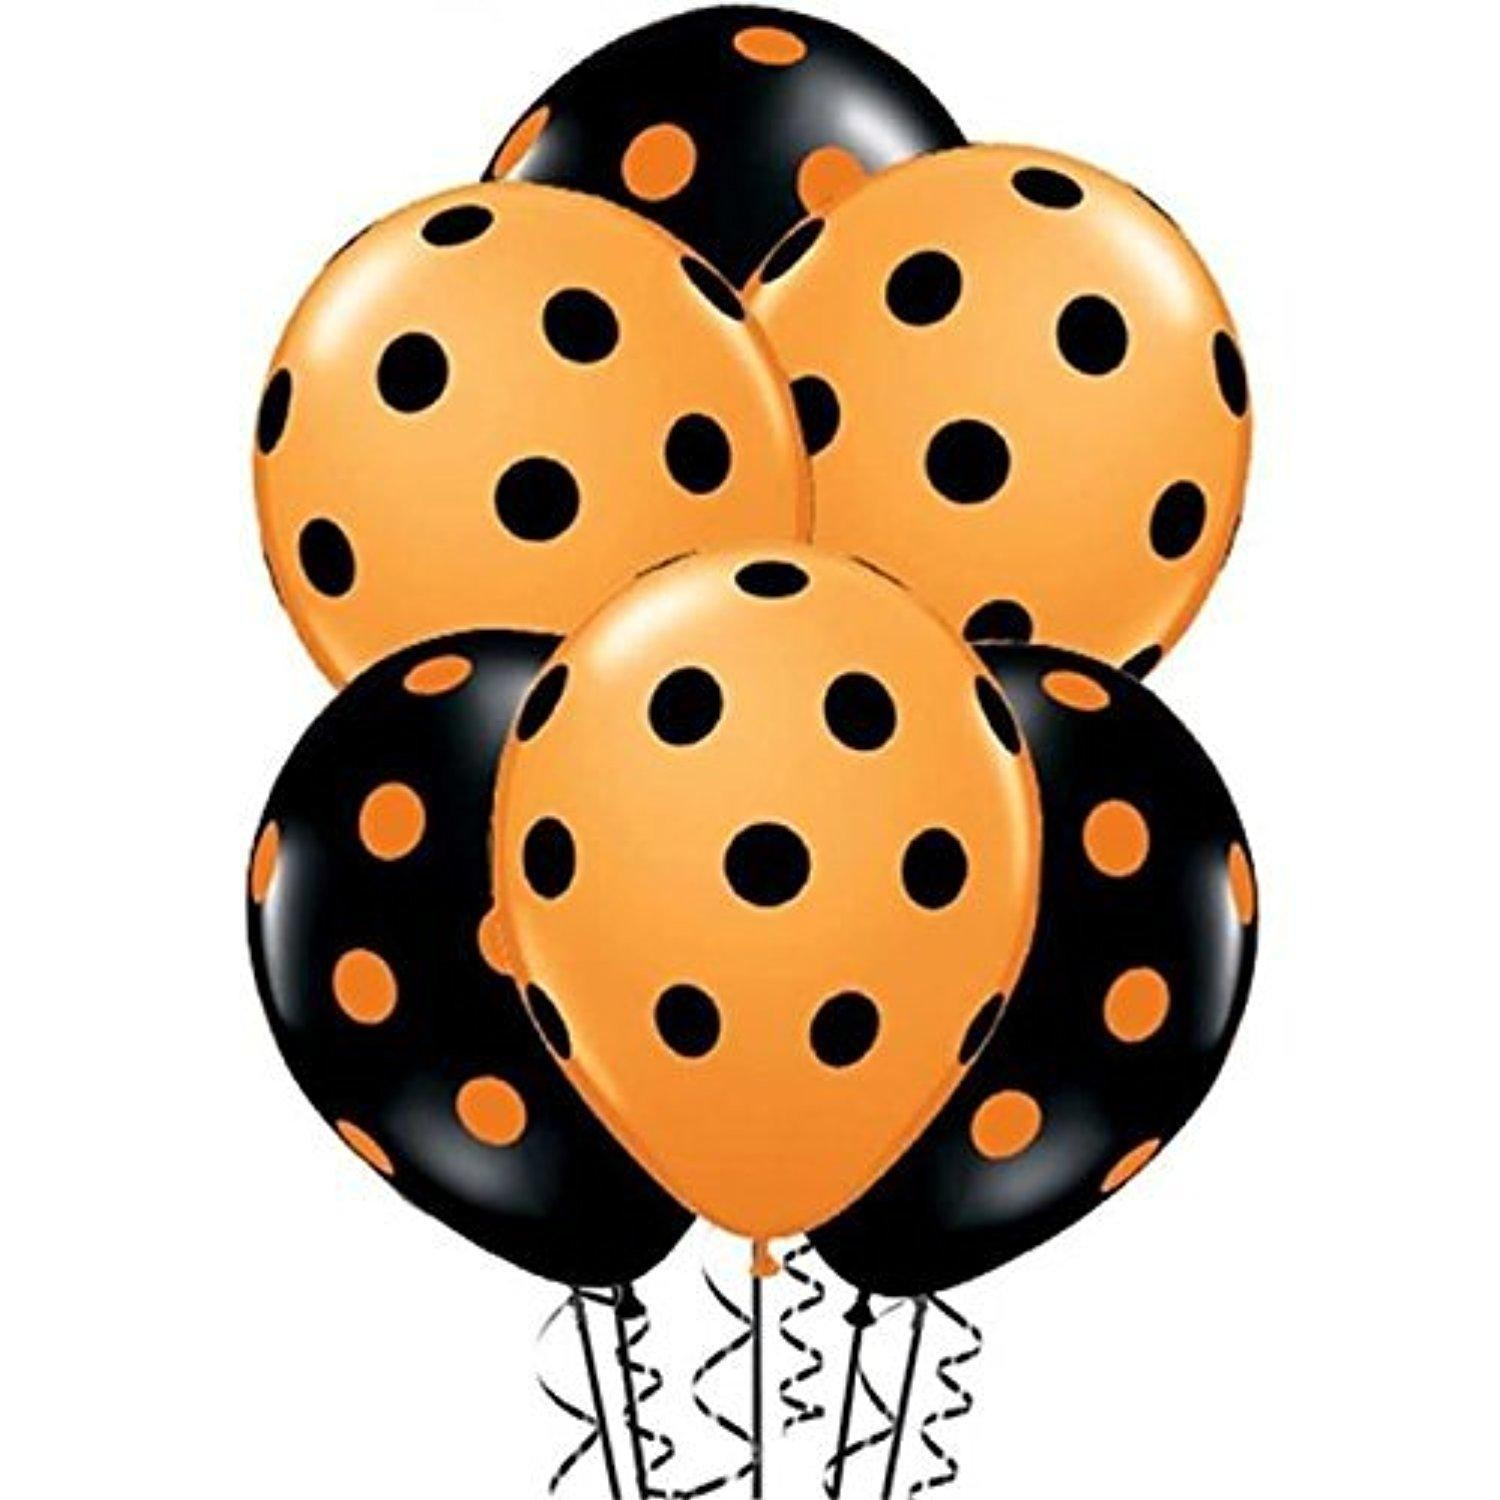 Free Halloween Balloons Cliparts, Download Free Clip Art.